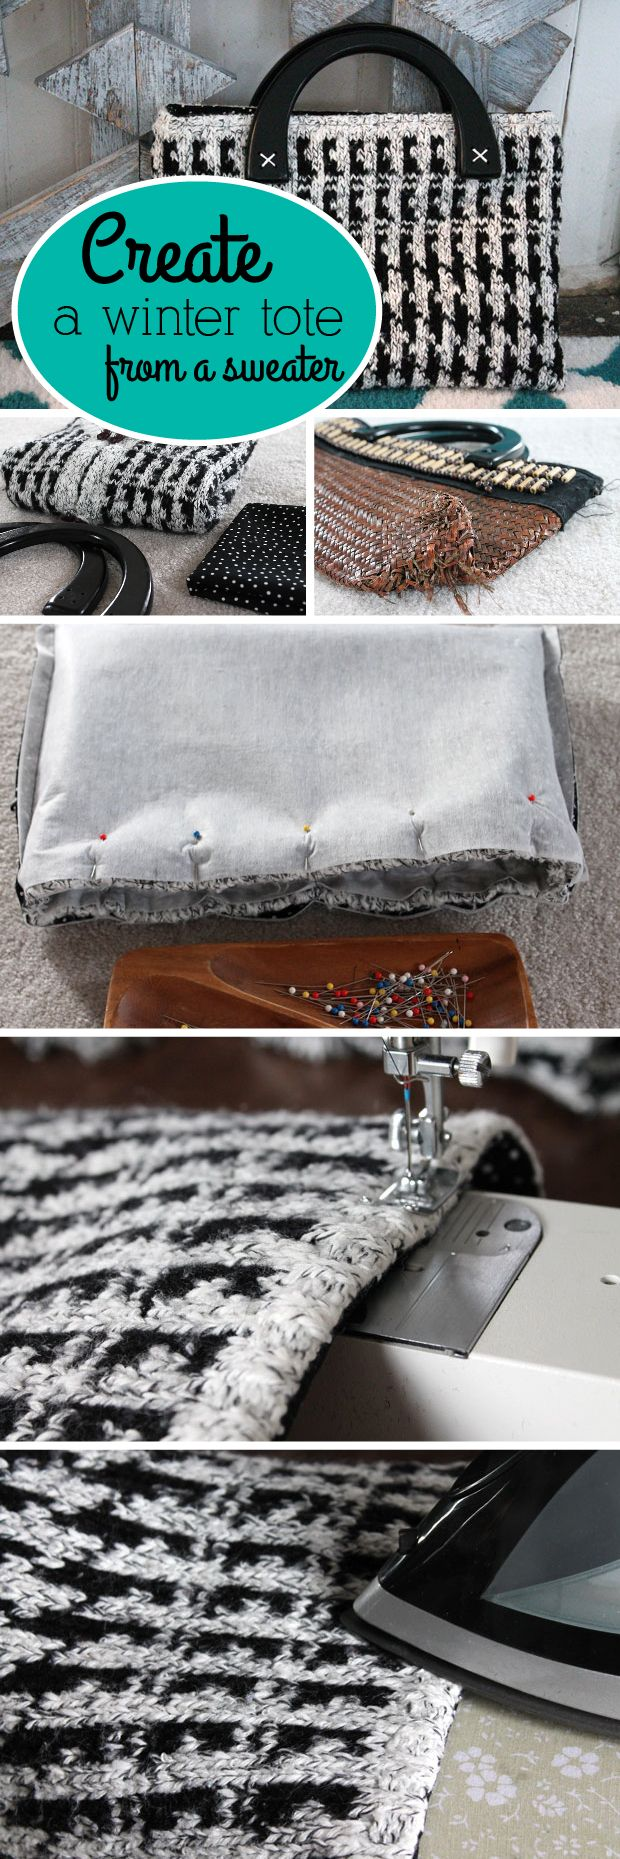 Take an old, beat-up purse and transform it into a cute winter tote made from an old sweater! Seriously, such a great upcycle idea!  http://www.ehow.com/ehow-crafts/blog/create-a-winter-tote-from-an-old-houndstooth-sweater/?utm_source=pinterest.com&utm_medium=referral&utm_content=blog&utm_campaign=fanpage